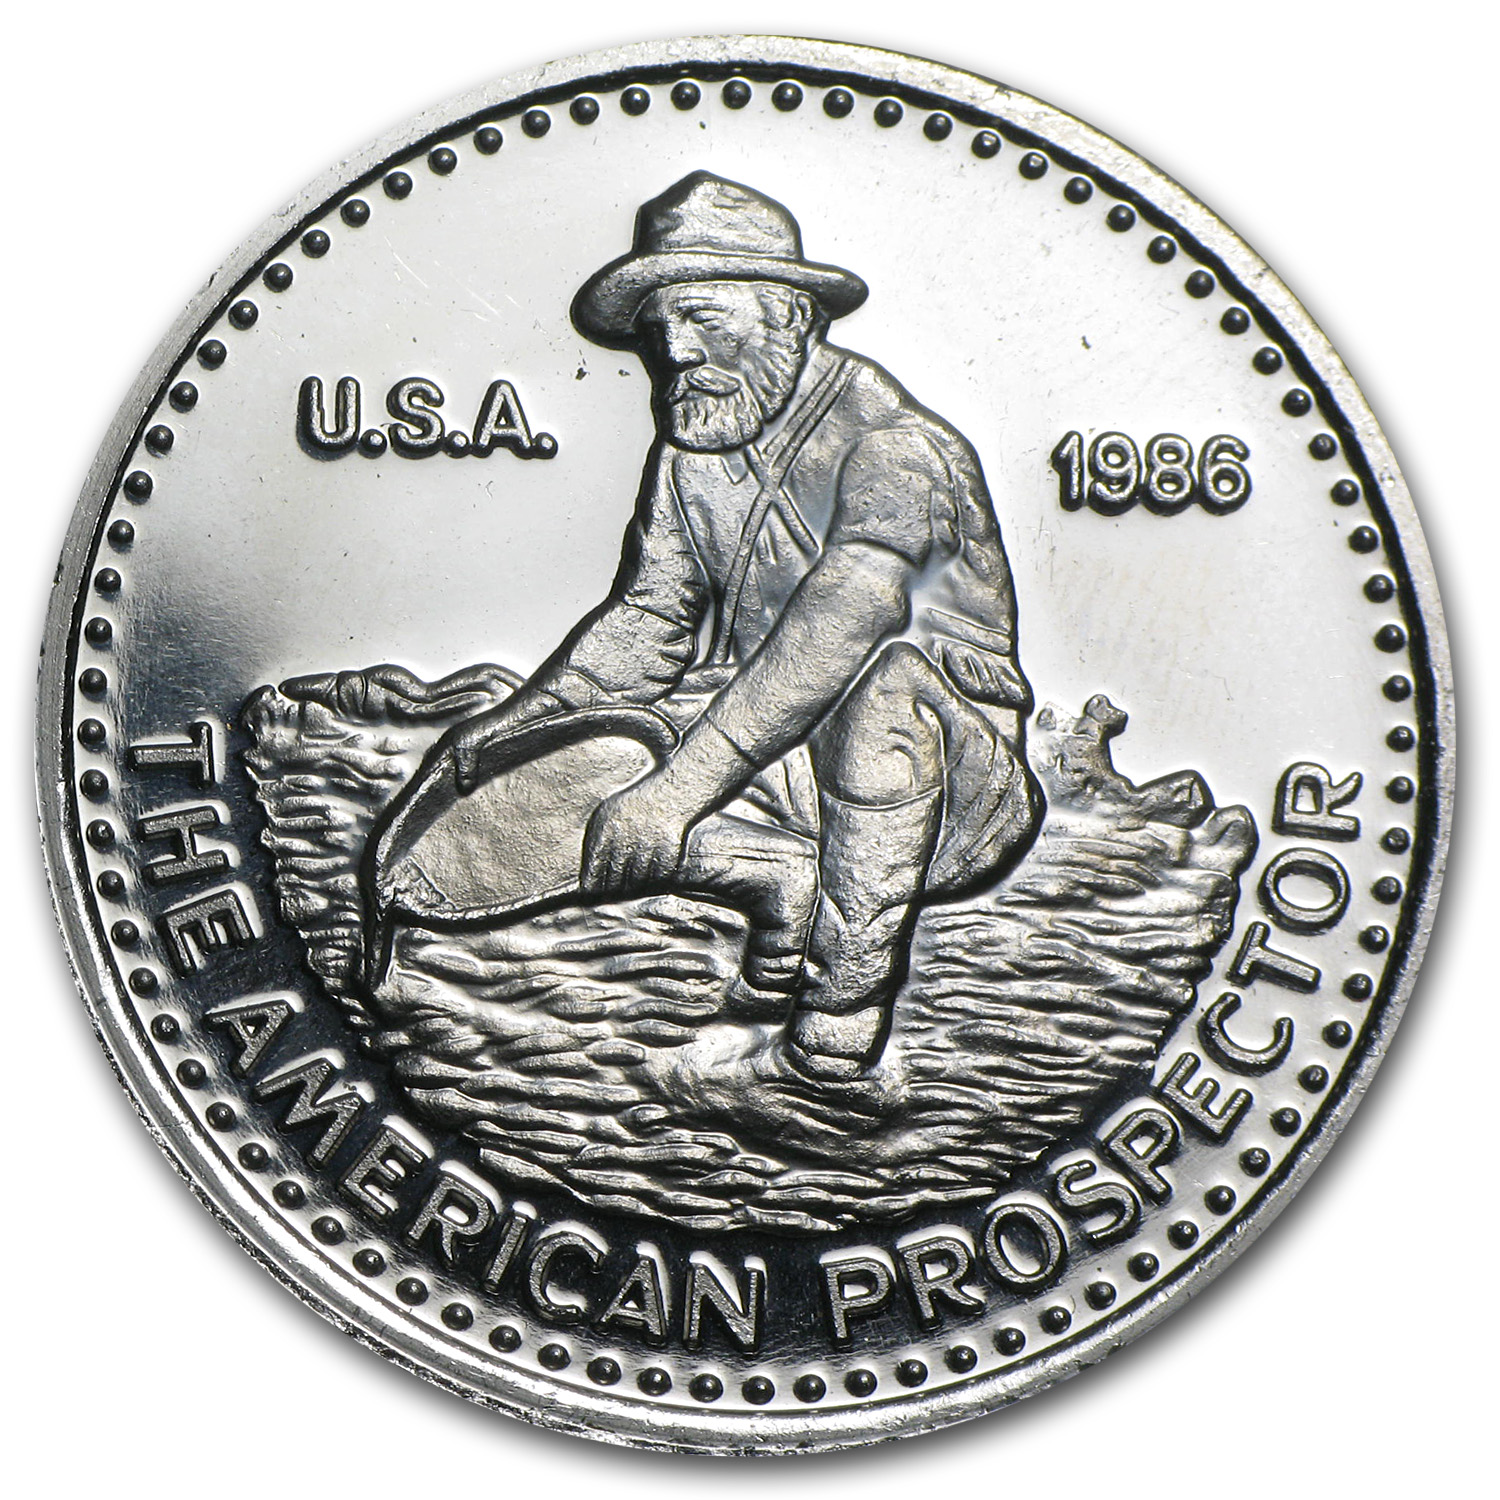 1 oz Platinum Round - Engelhard (.9995 Fine, No Assay)